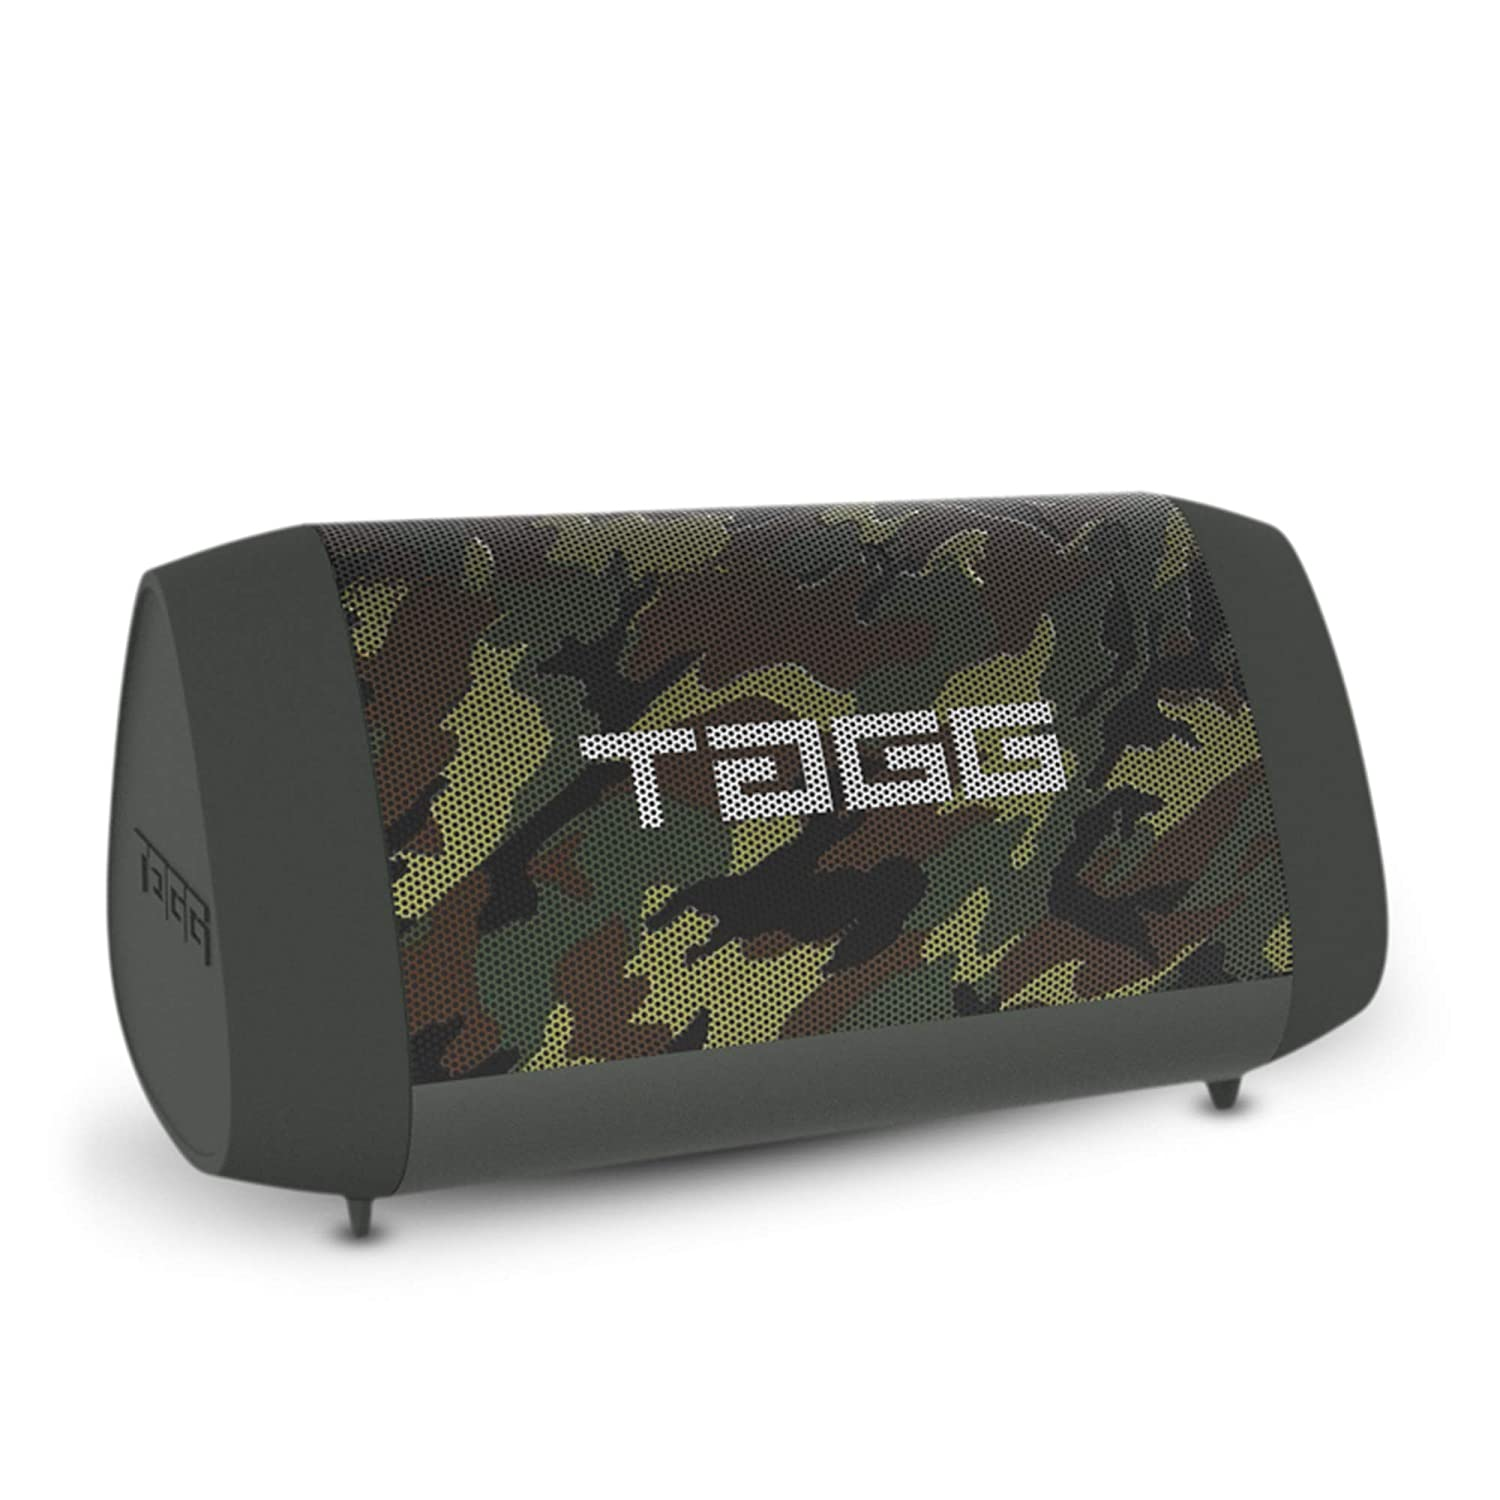 TAGG Sonic Angle 1 IPX5 Water Resistant Wireless Portable Bluetooth Speaker with Microphone